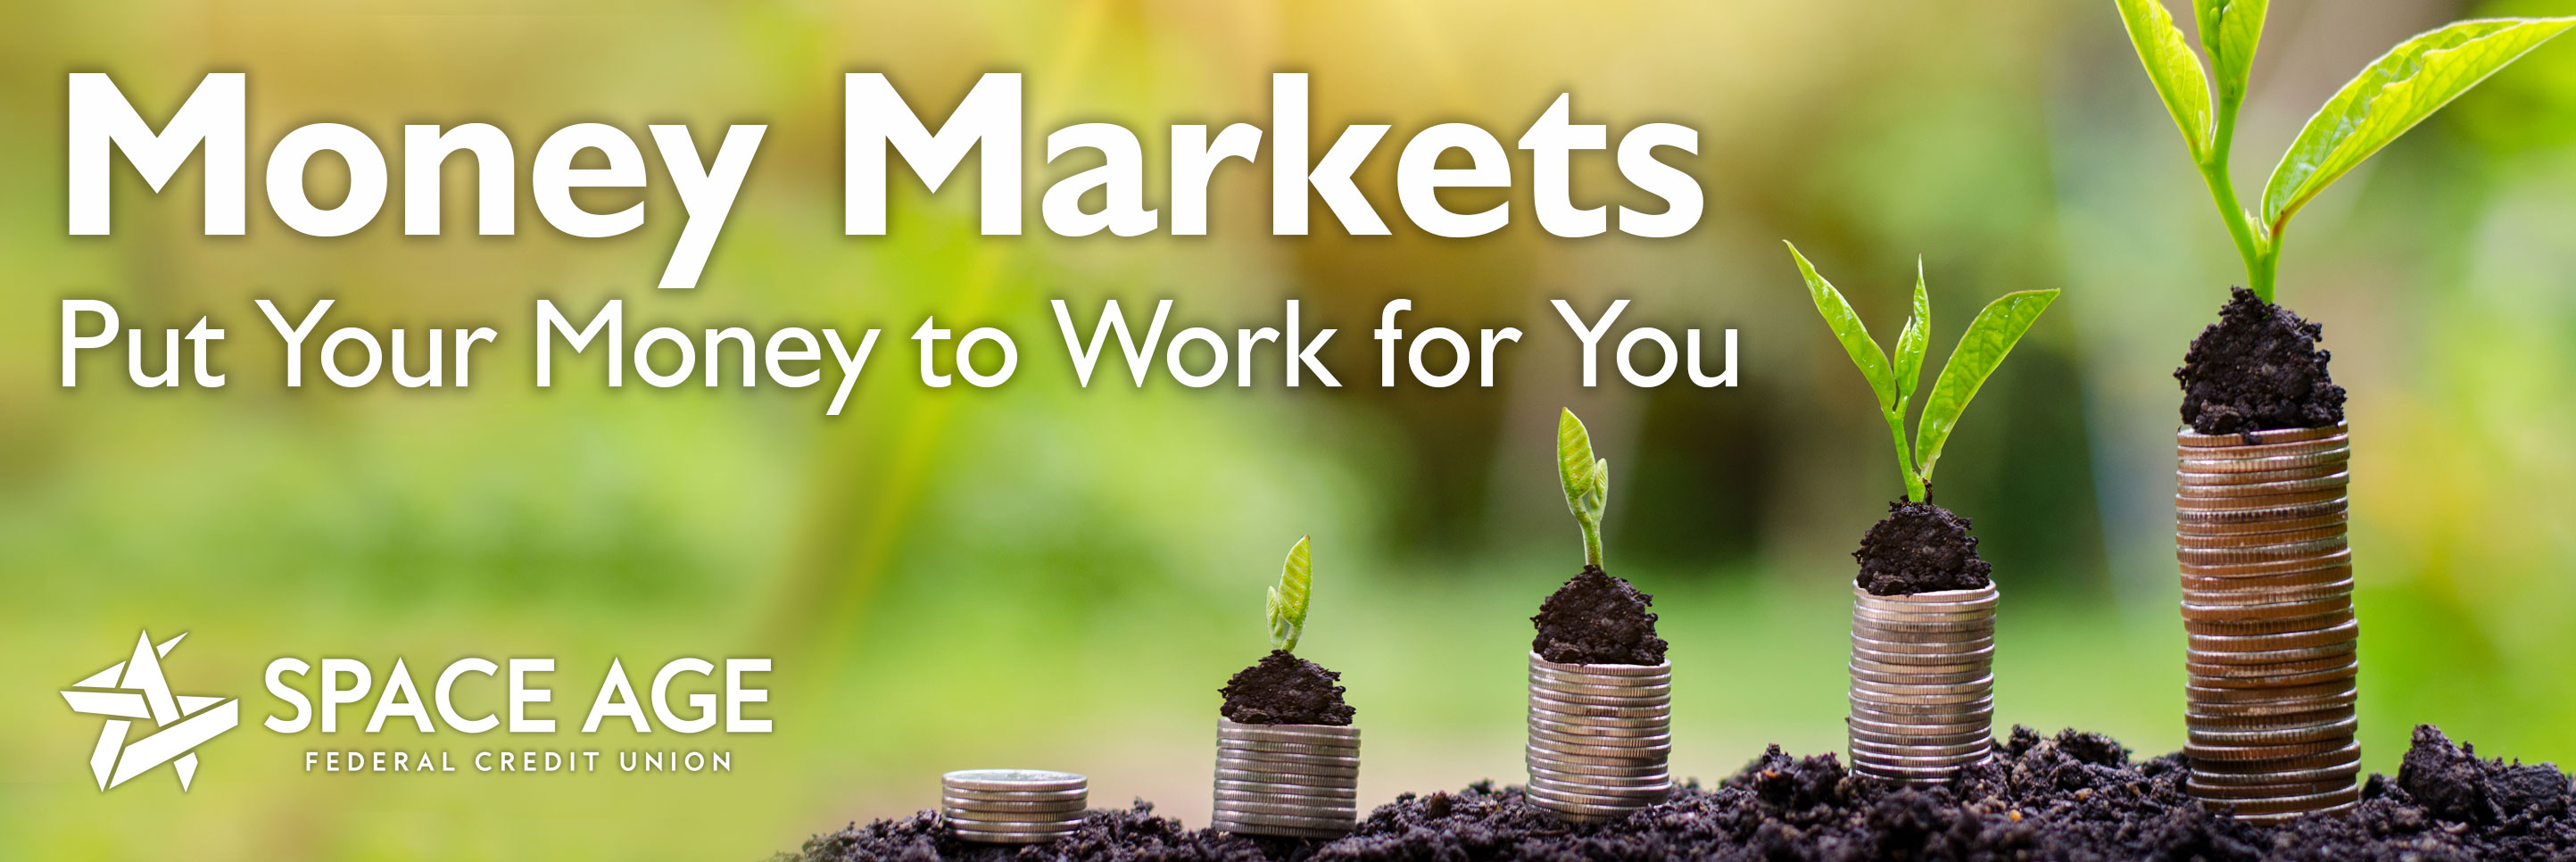 Make Your Money Work for You with a Money Market Account